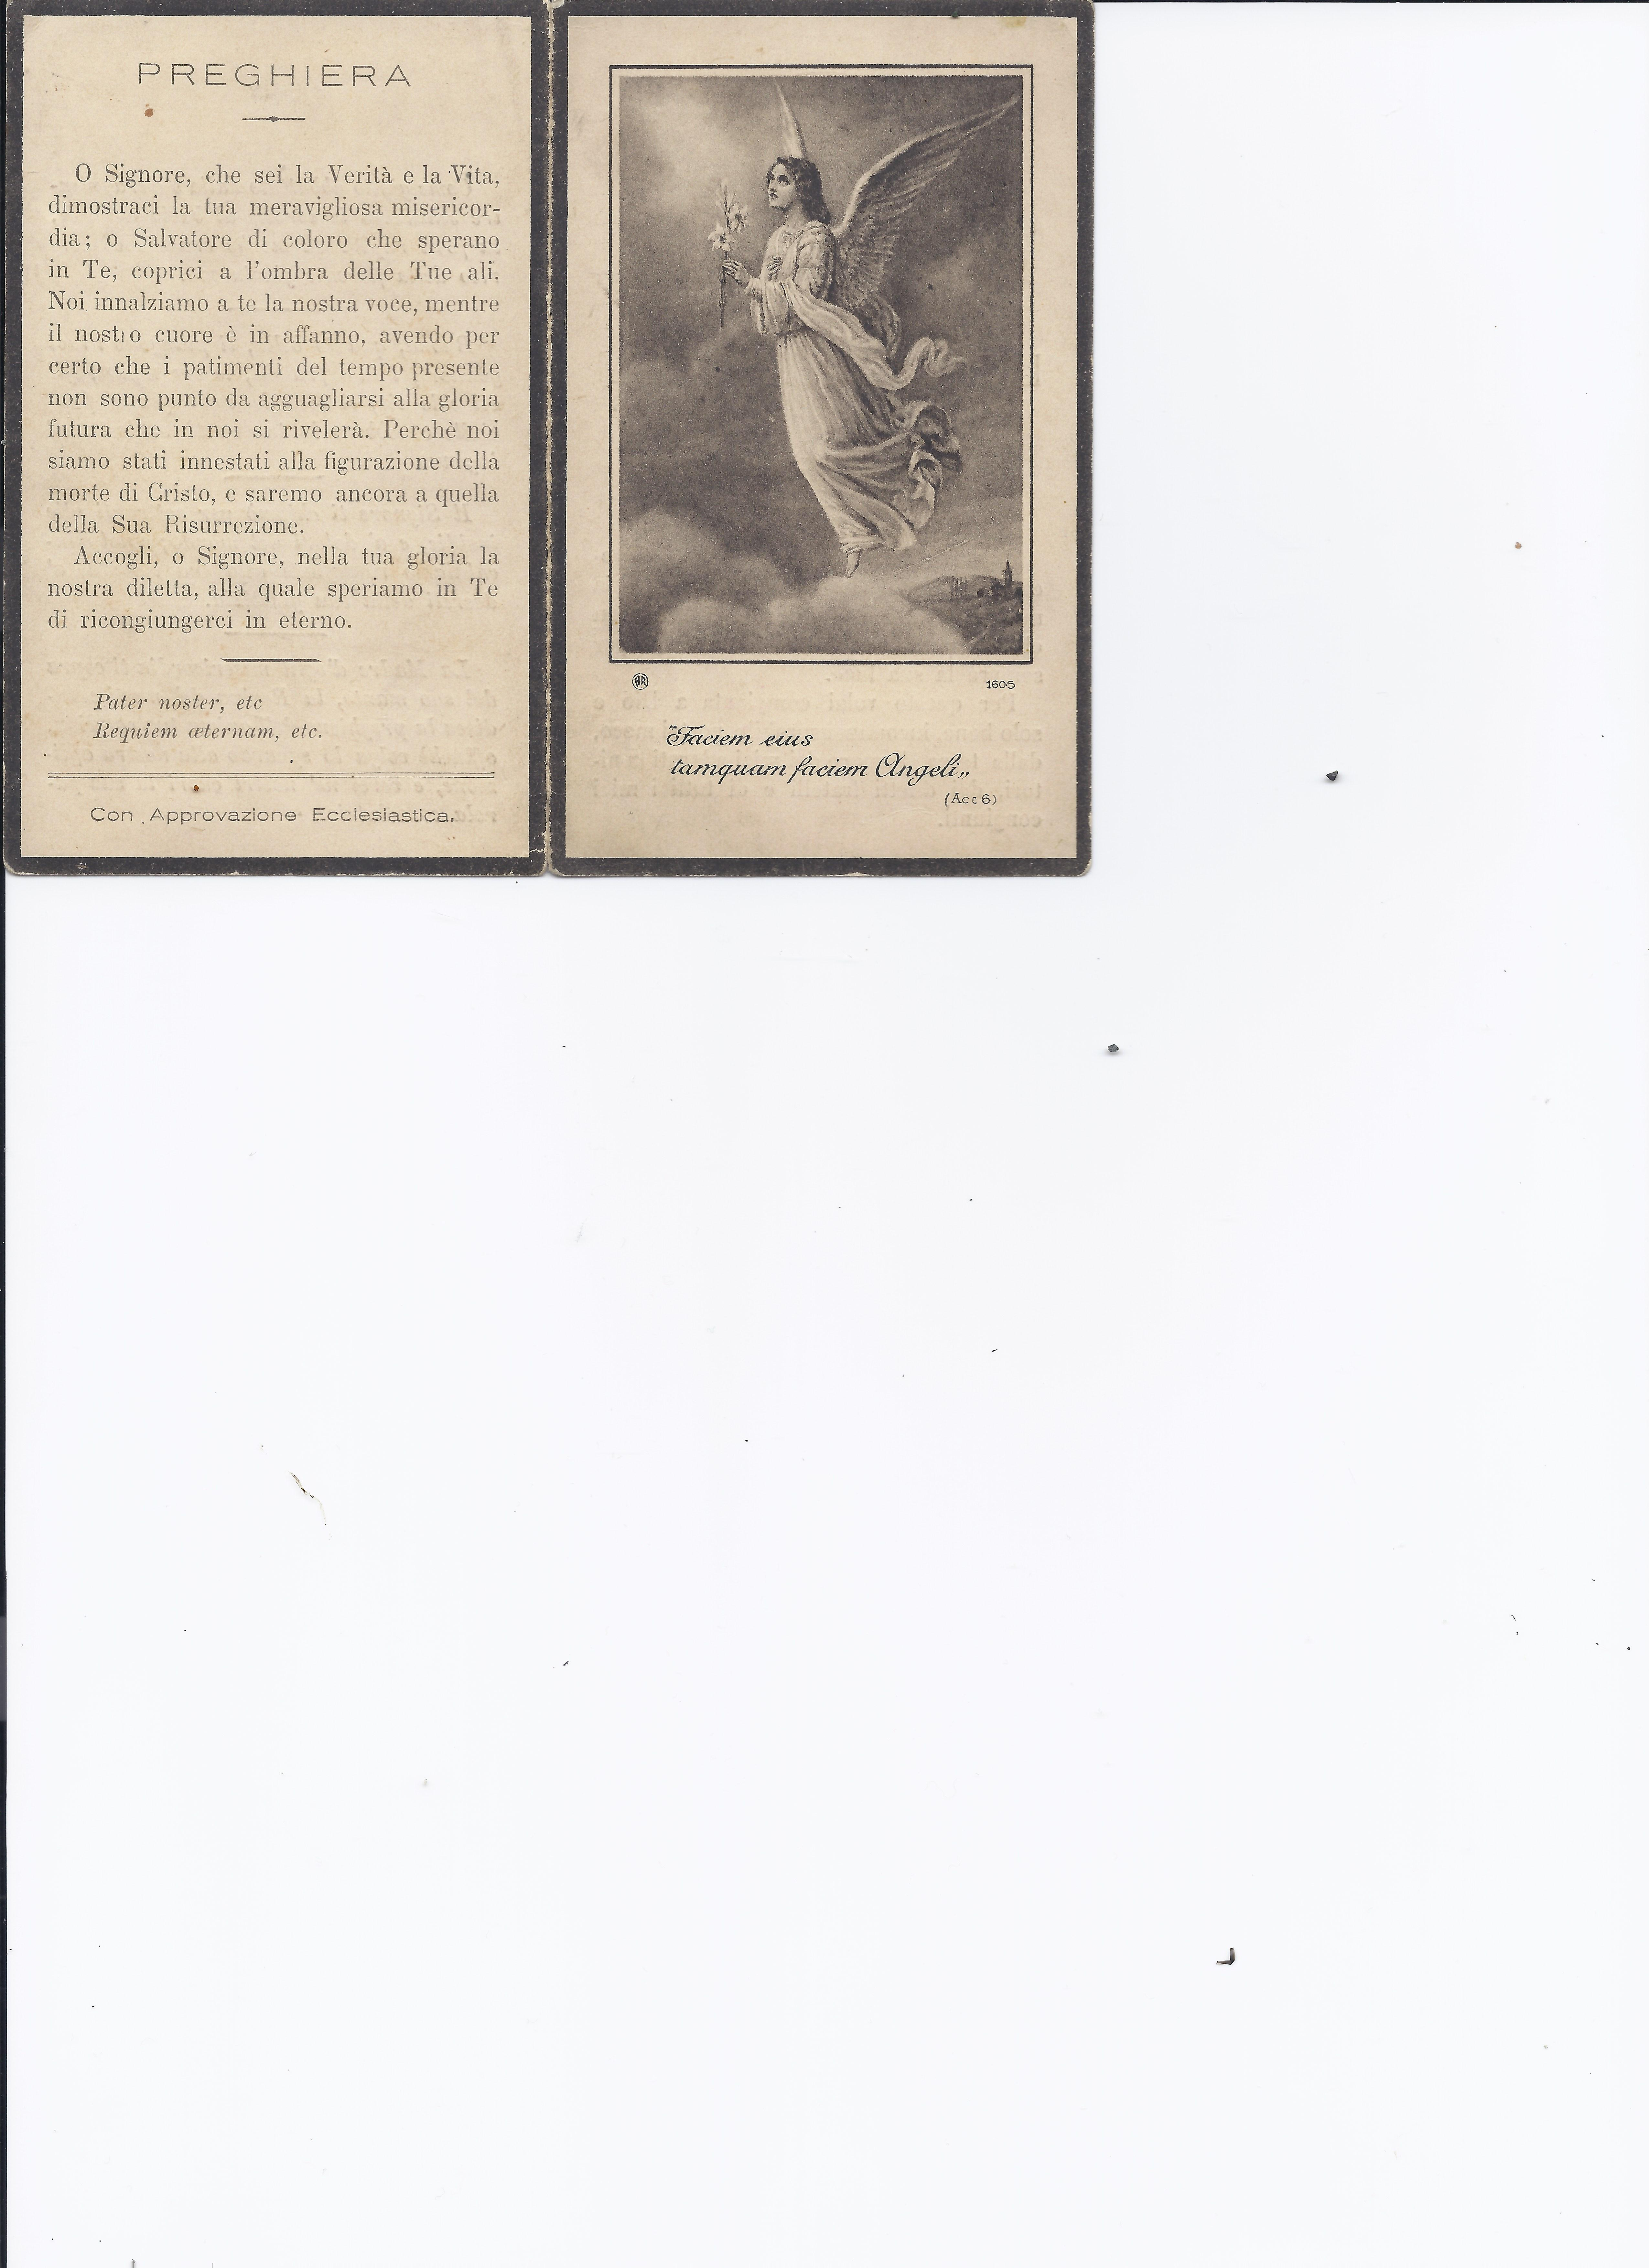 Card found in Grandma's Daily Missal - front and back pages.jpg